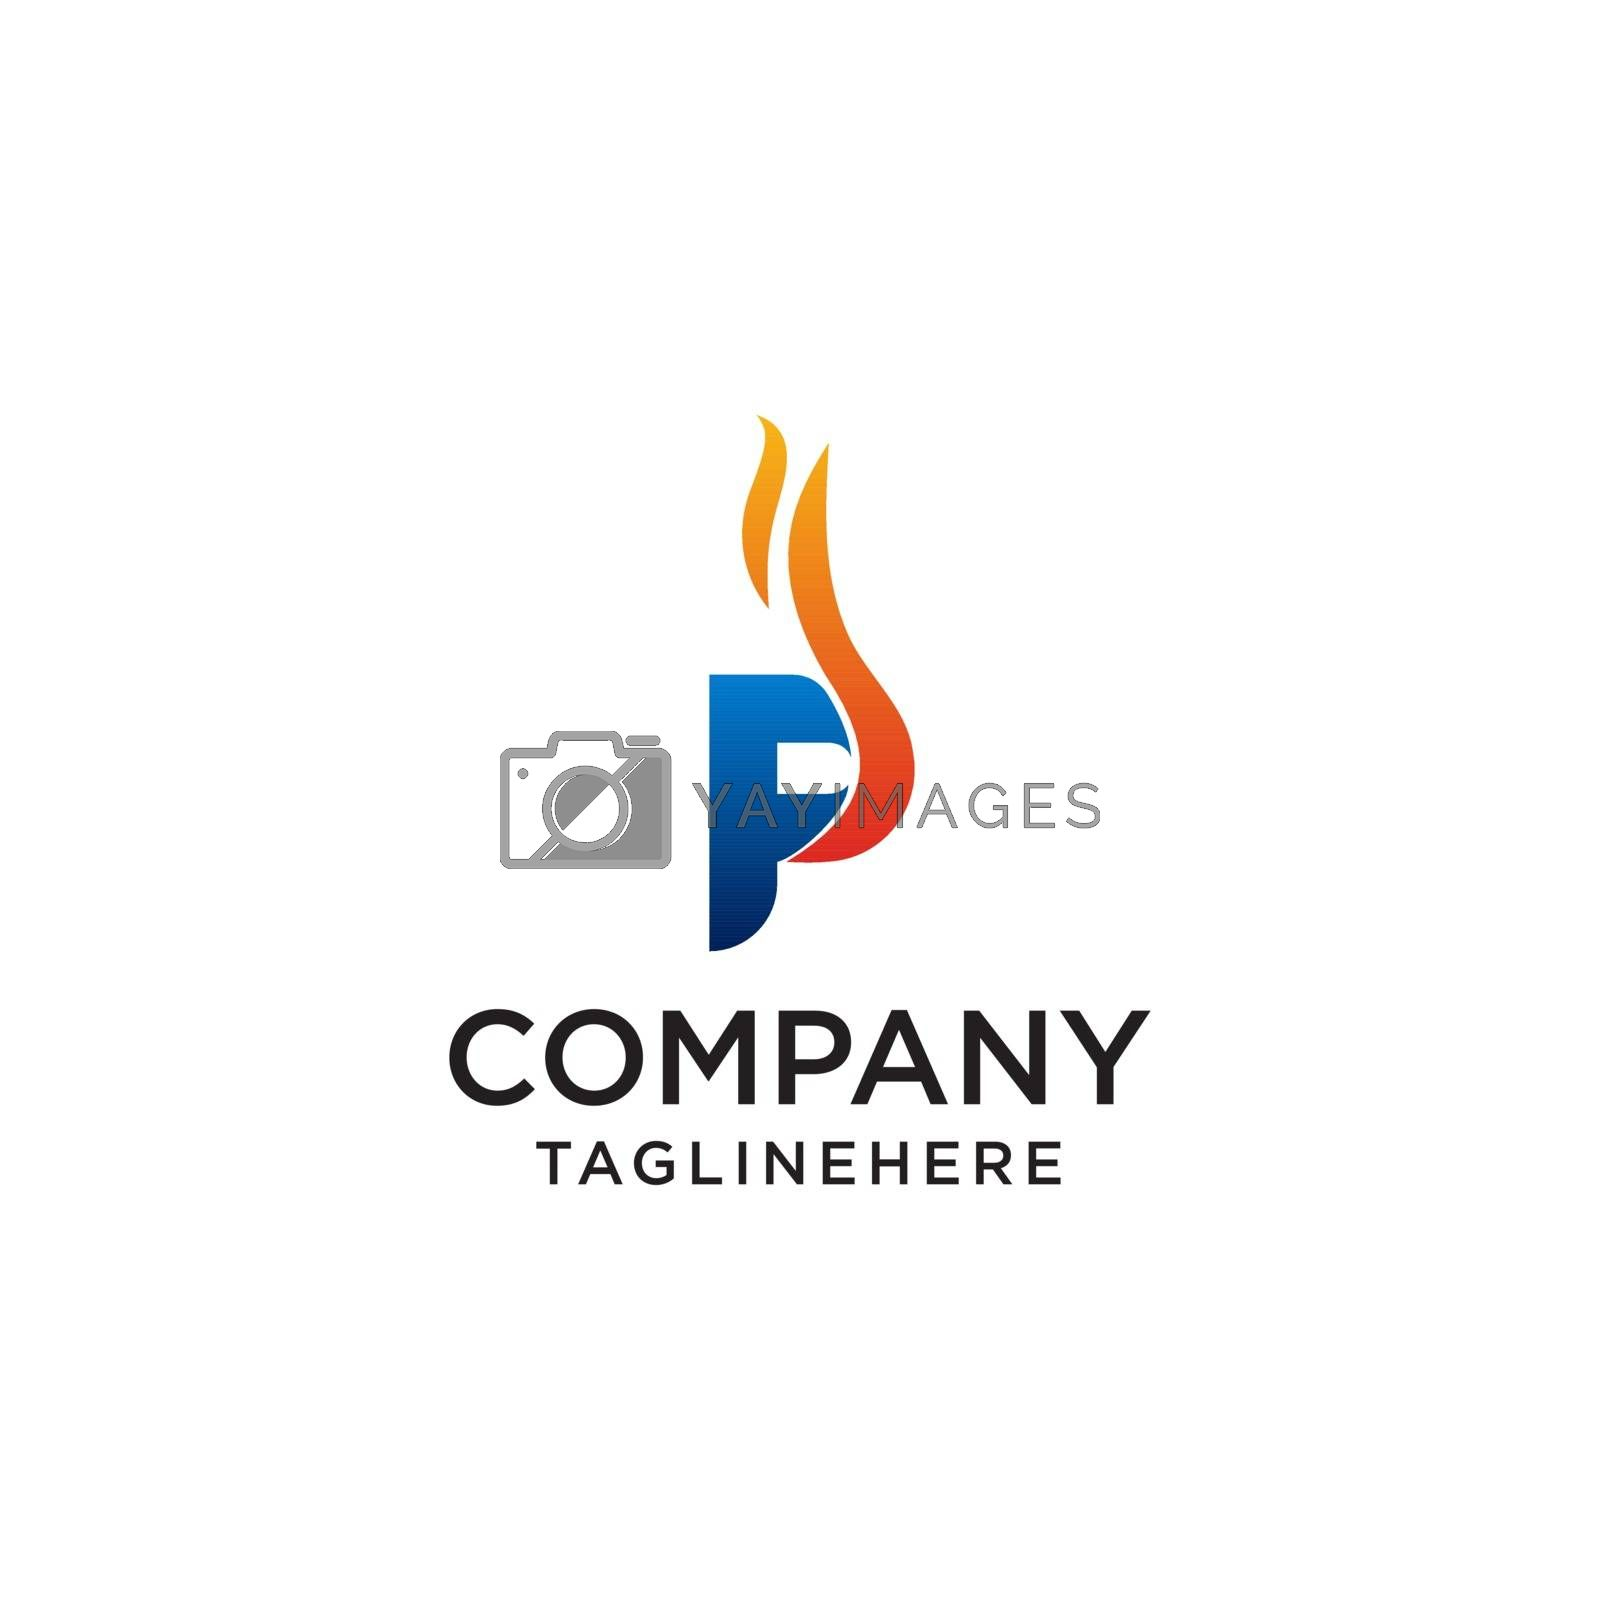 initial Letter P fire logo design. fire company logos, oil companies, mining companies, fire logos, marketing, corporate business logos. icon. vector